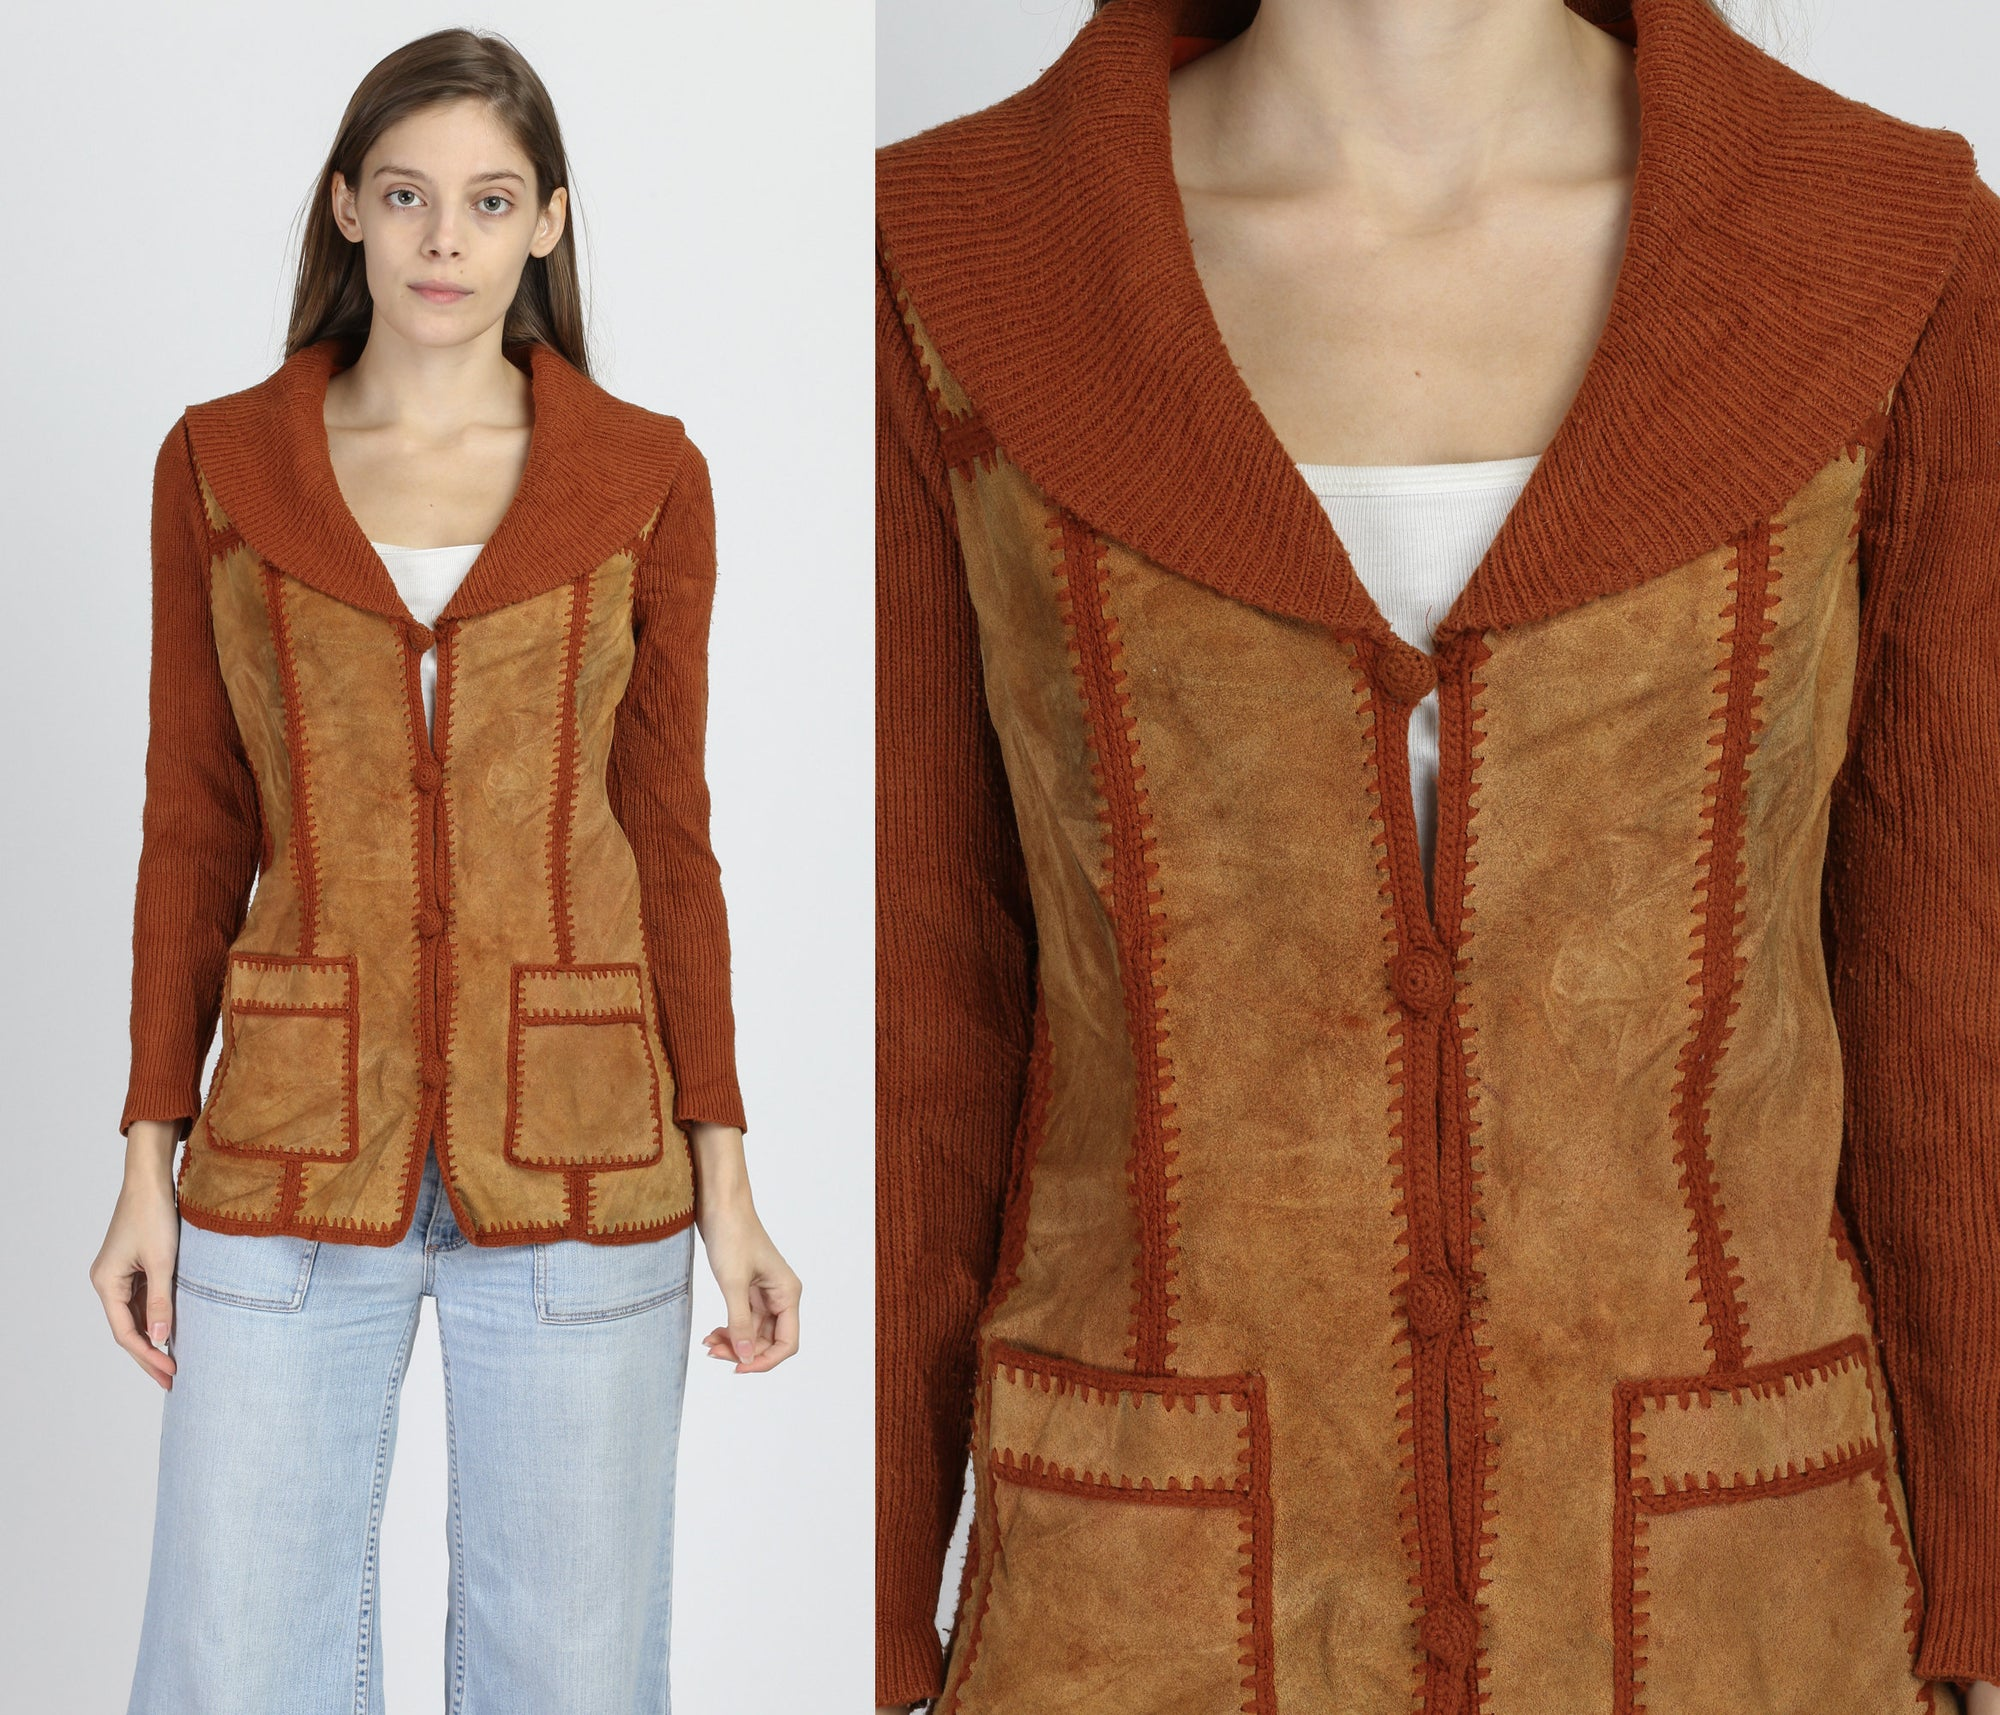 70s Suede & Knit Cardigan - Small